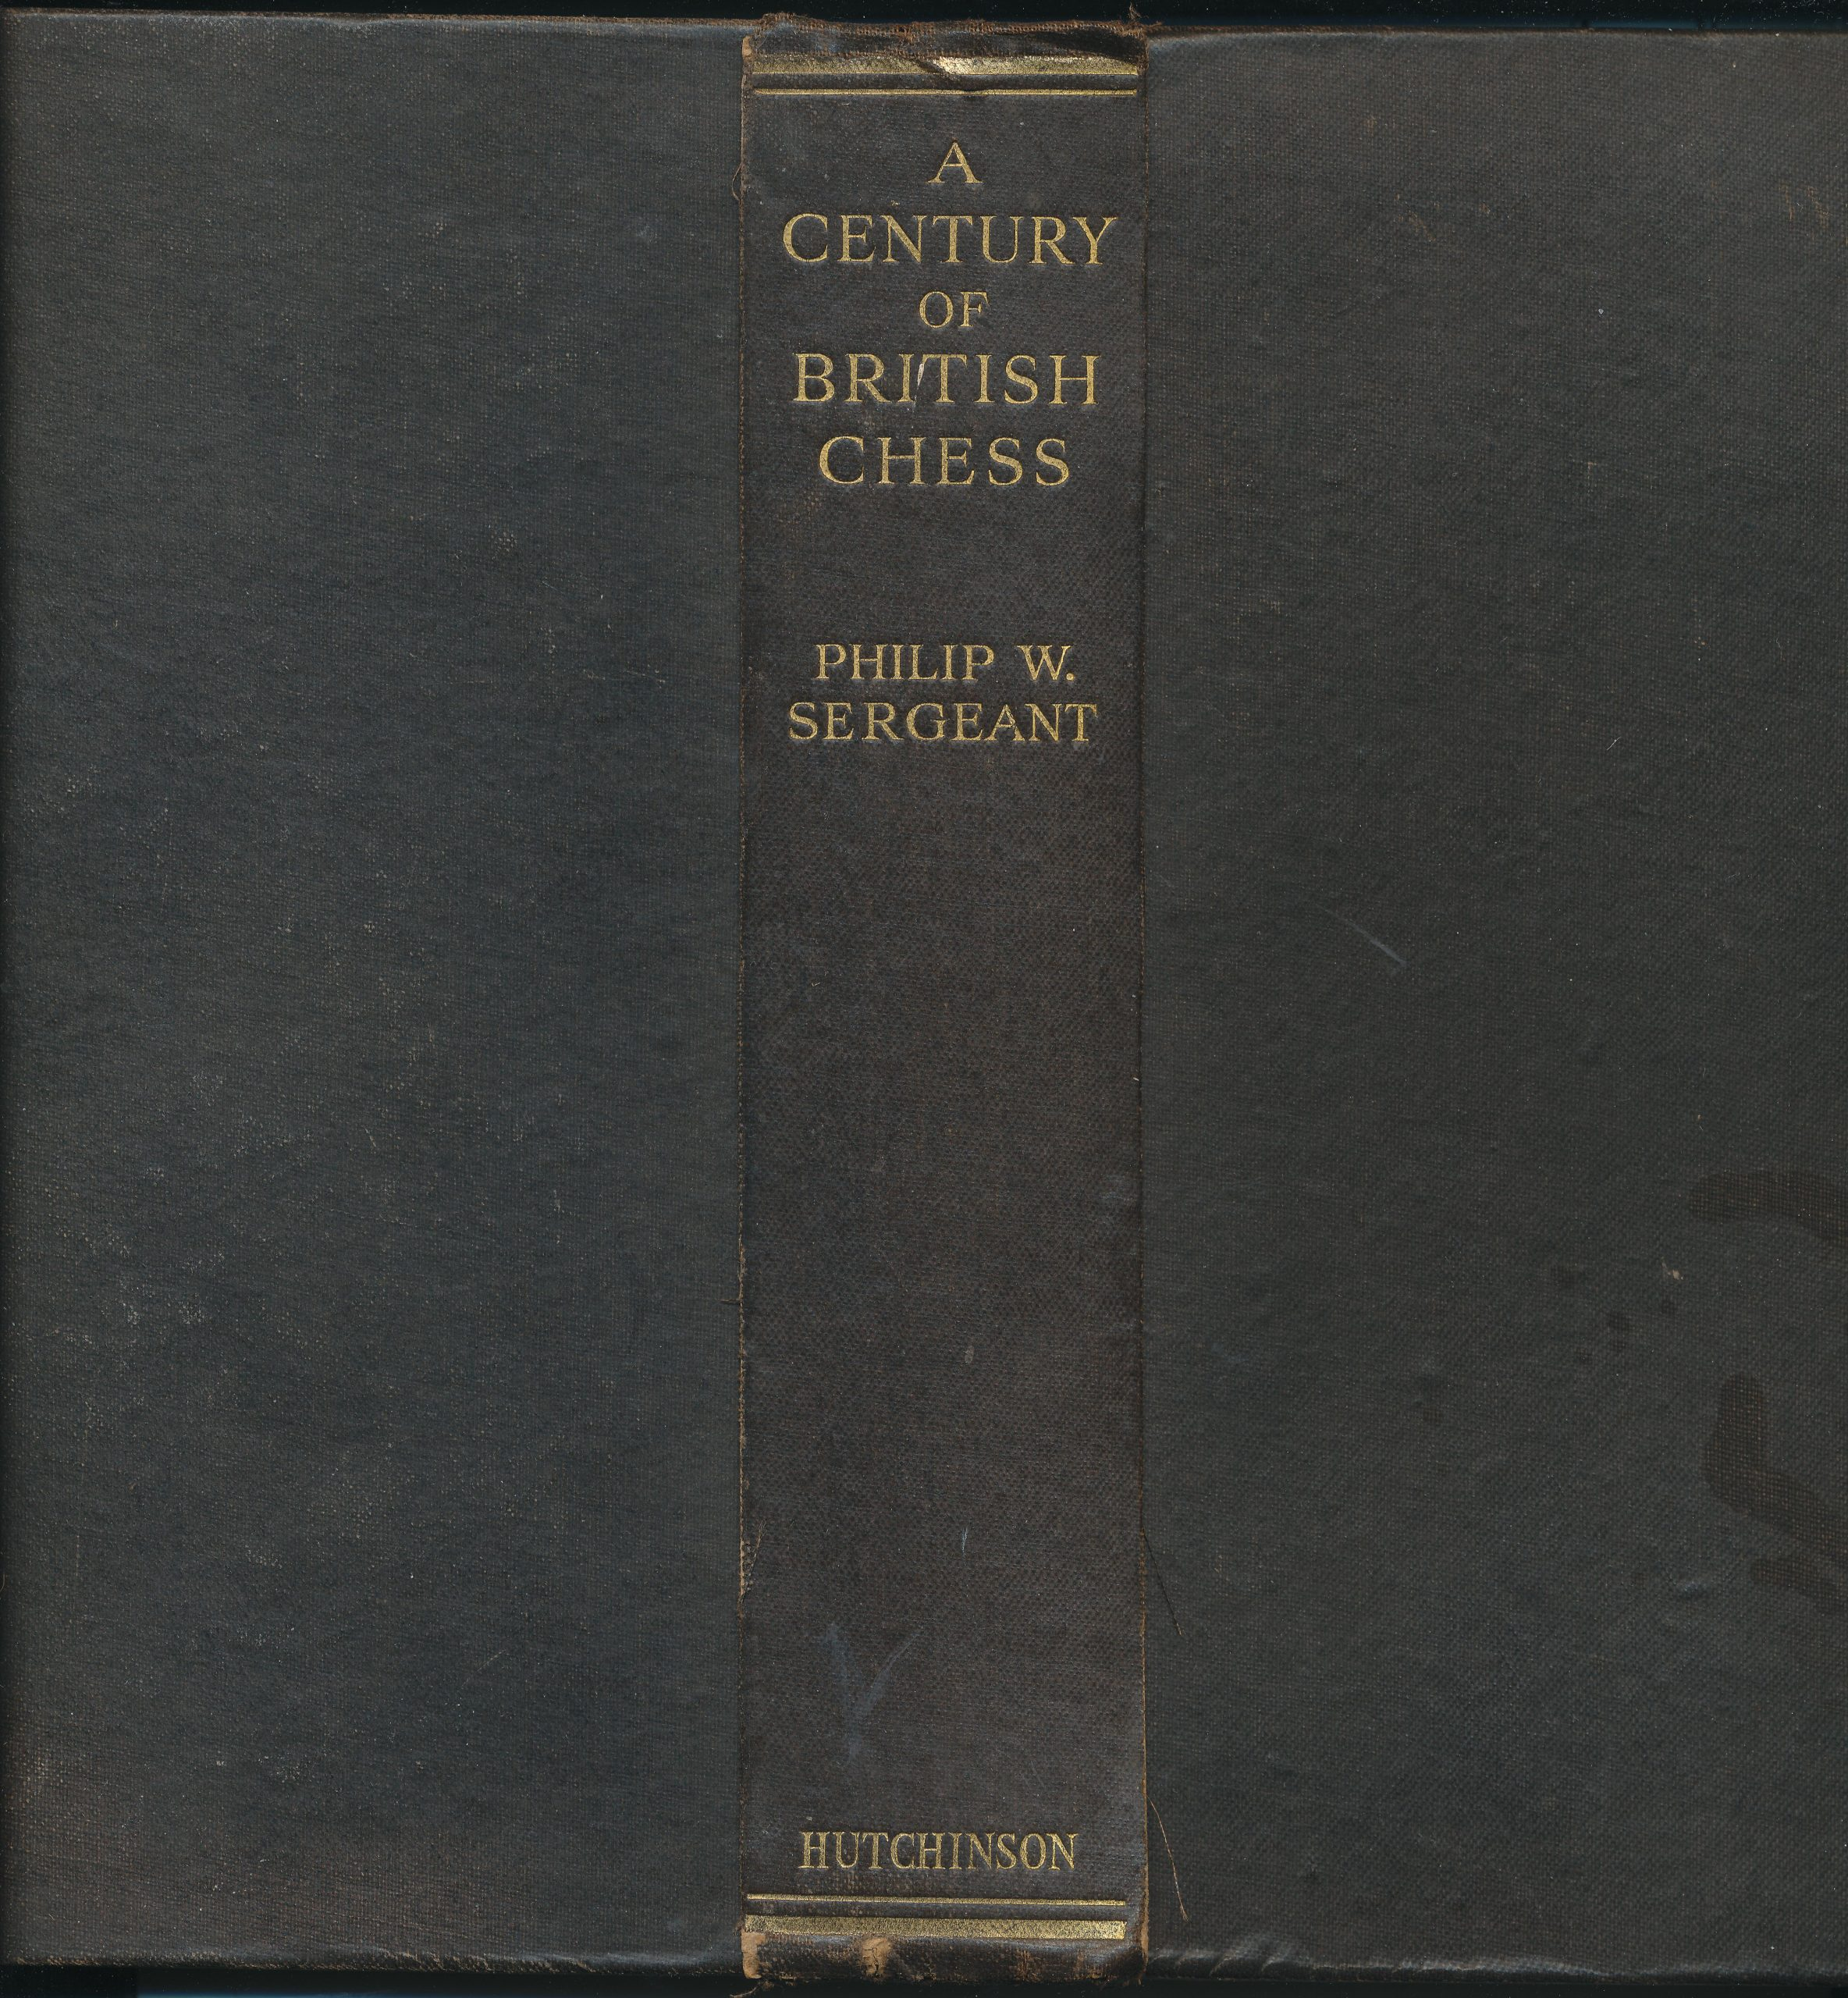 A Century of British Chess, PW Sergeant, Hutchinson, 1934